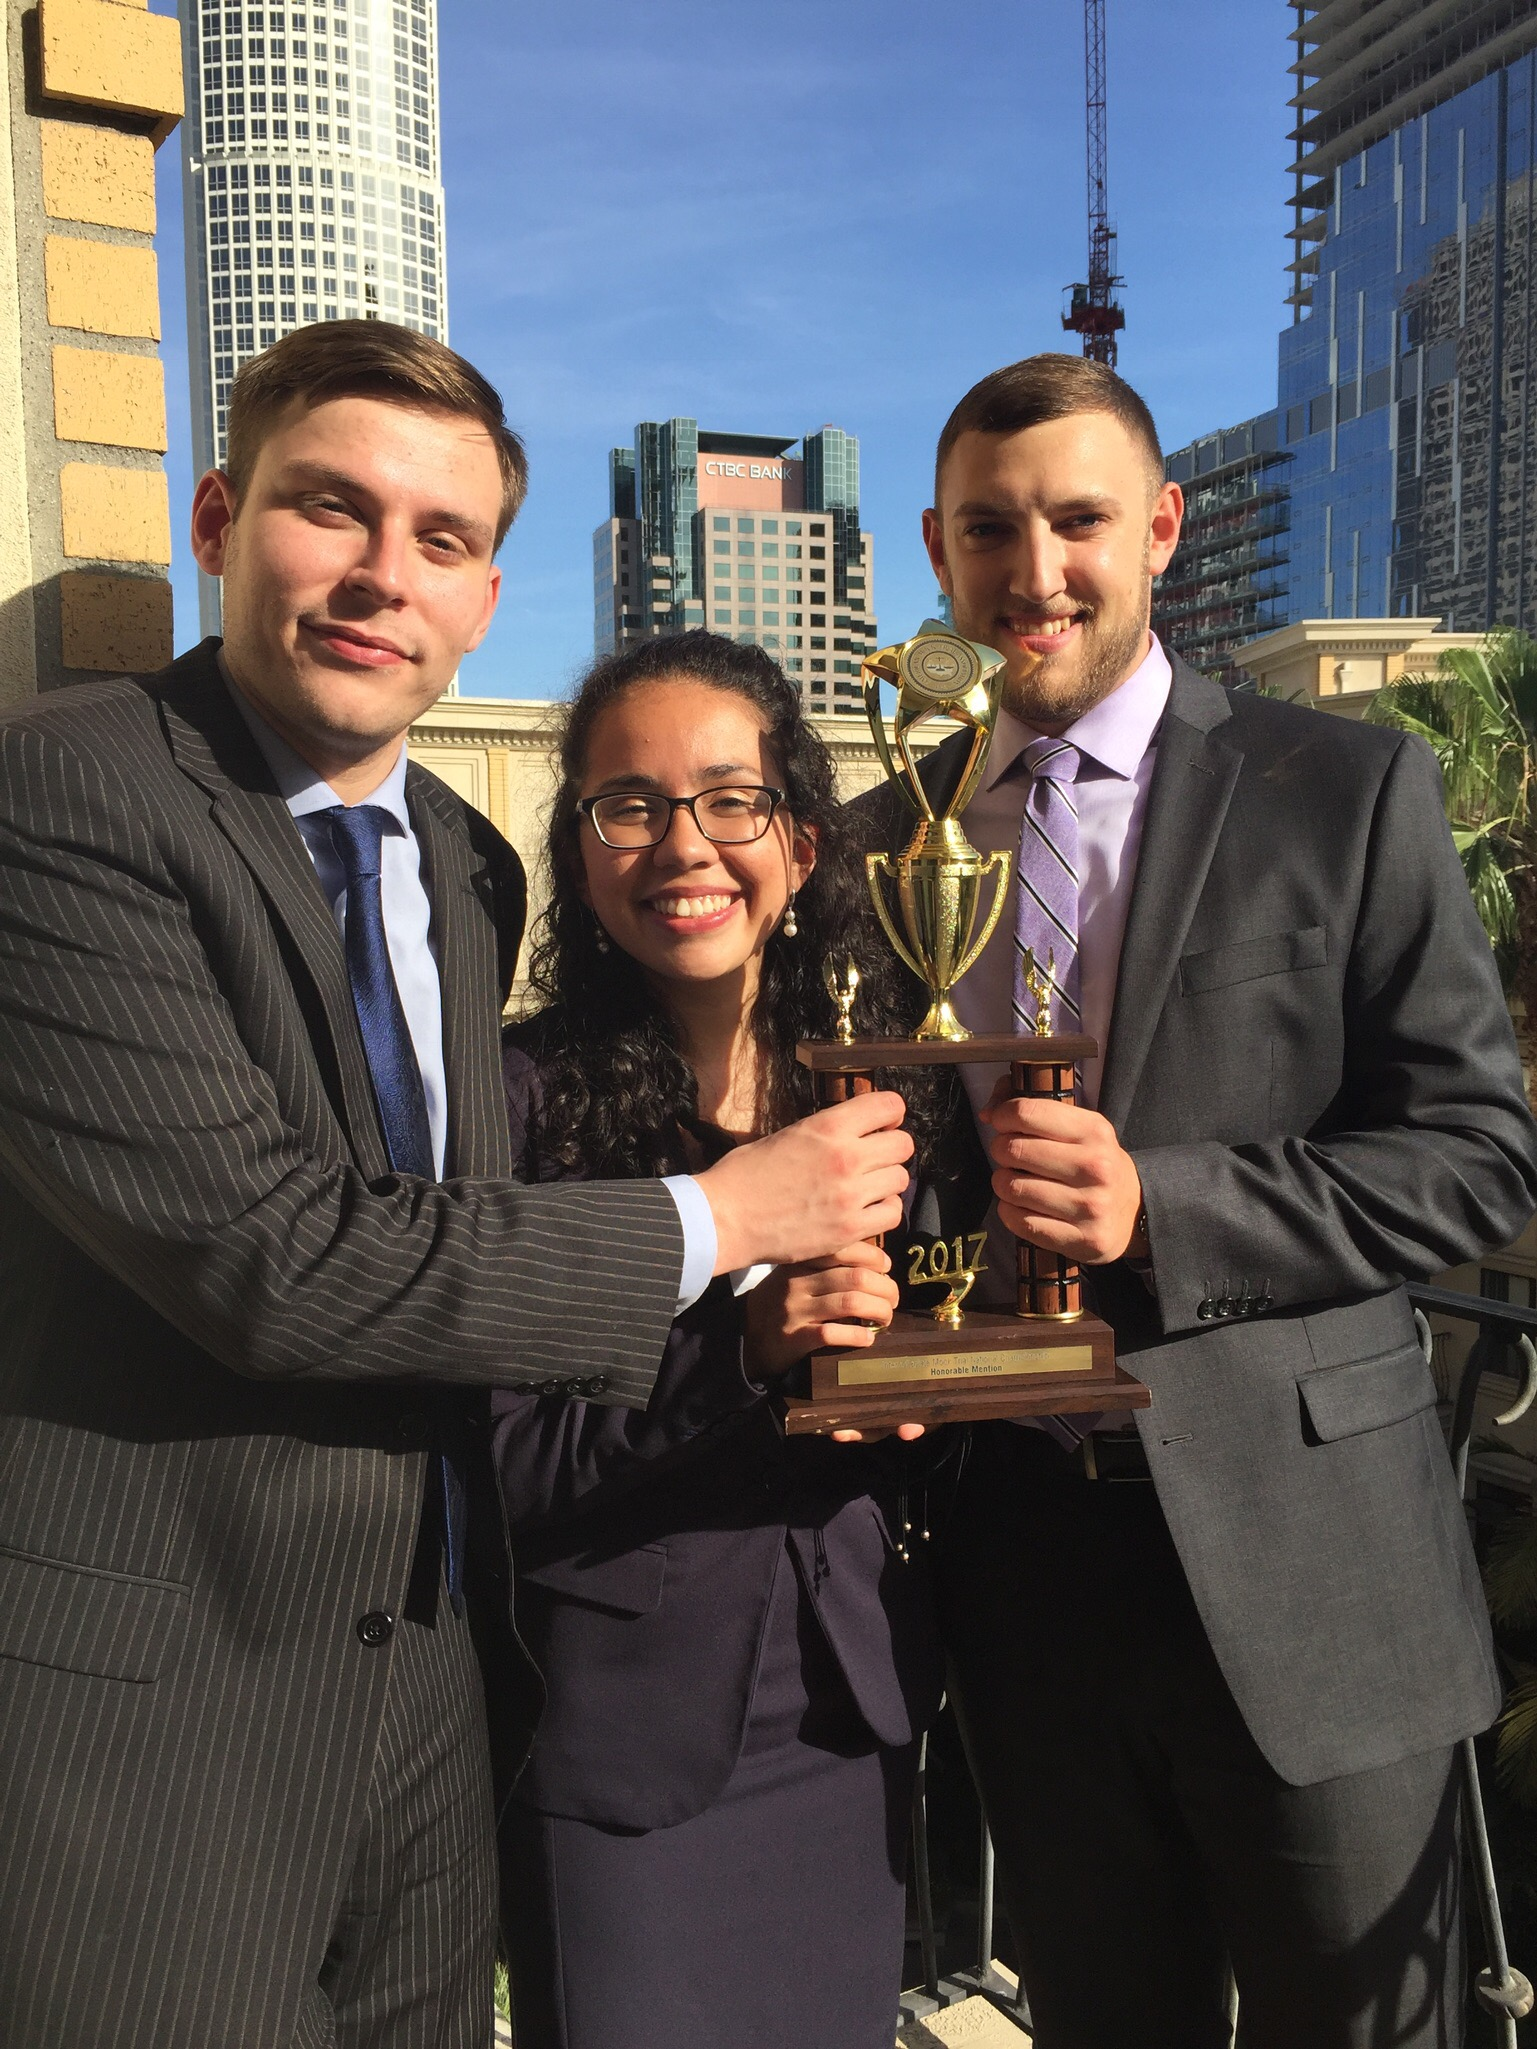 The Penn State Mock Trial Association recieved Honorable Menition Trophy